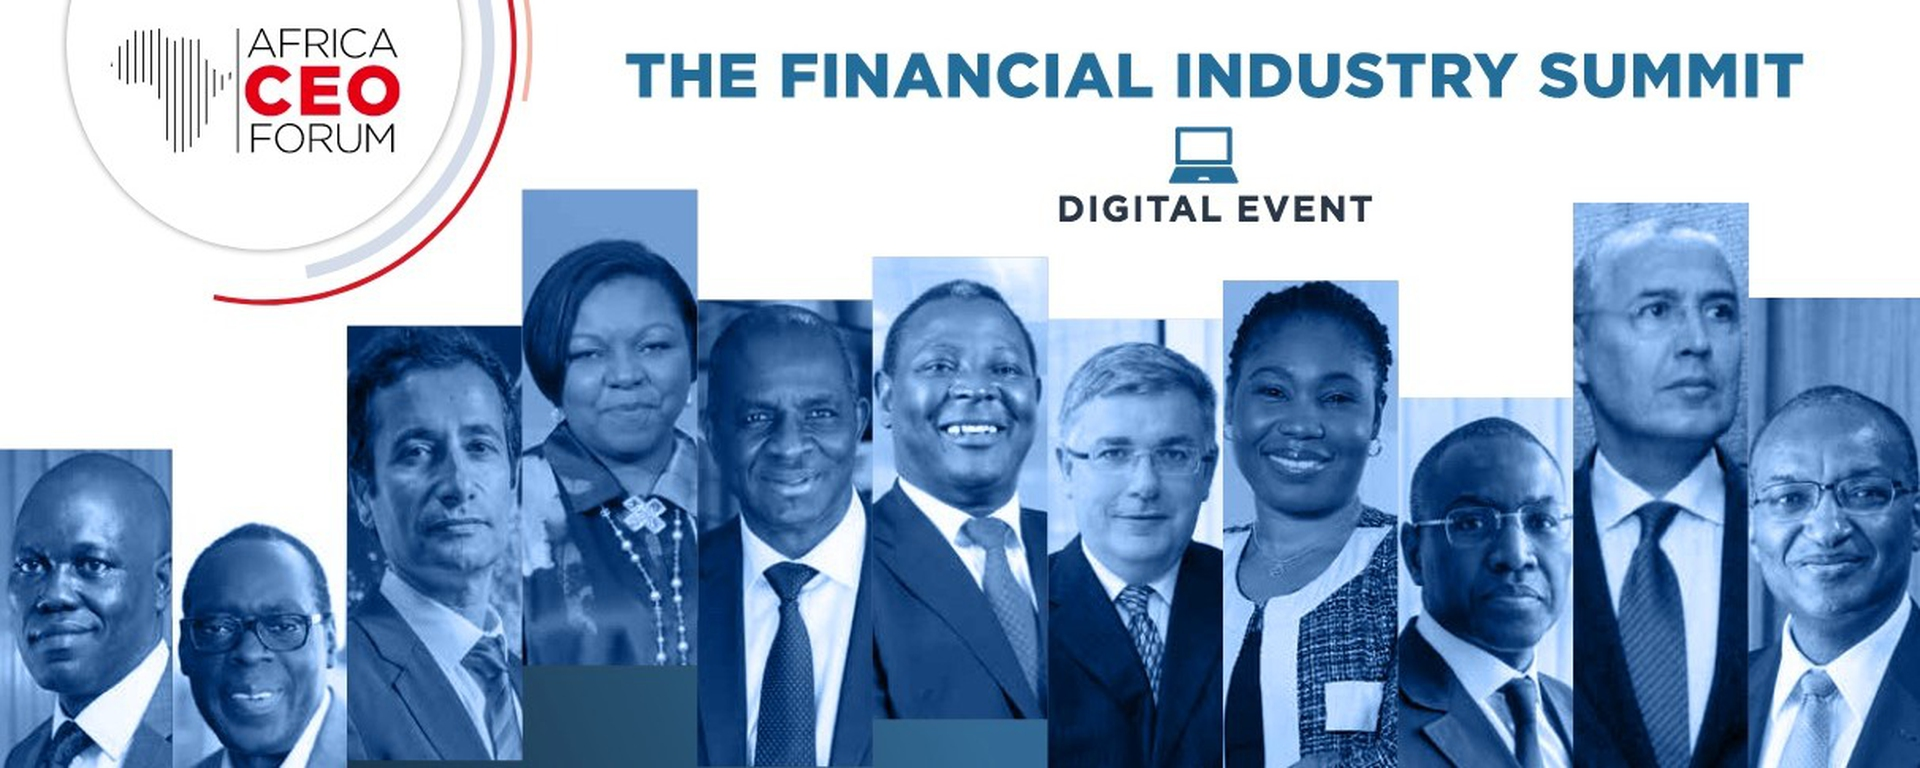 Africa CEO Forum - The Financial Industry Summit Movemeback African event cover image